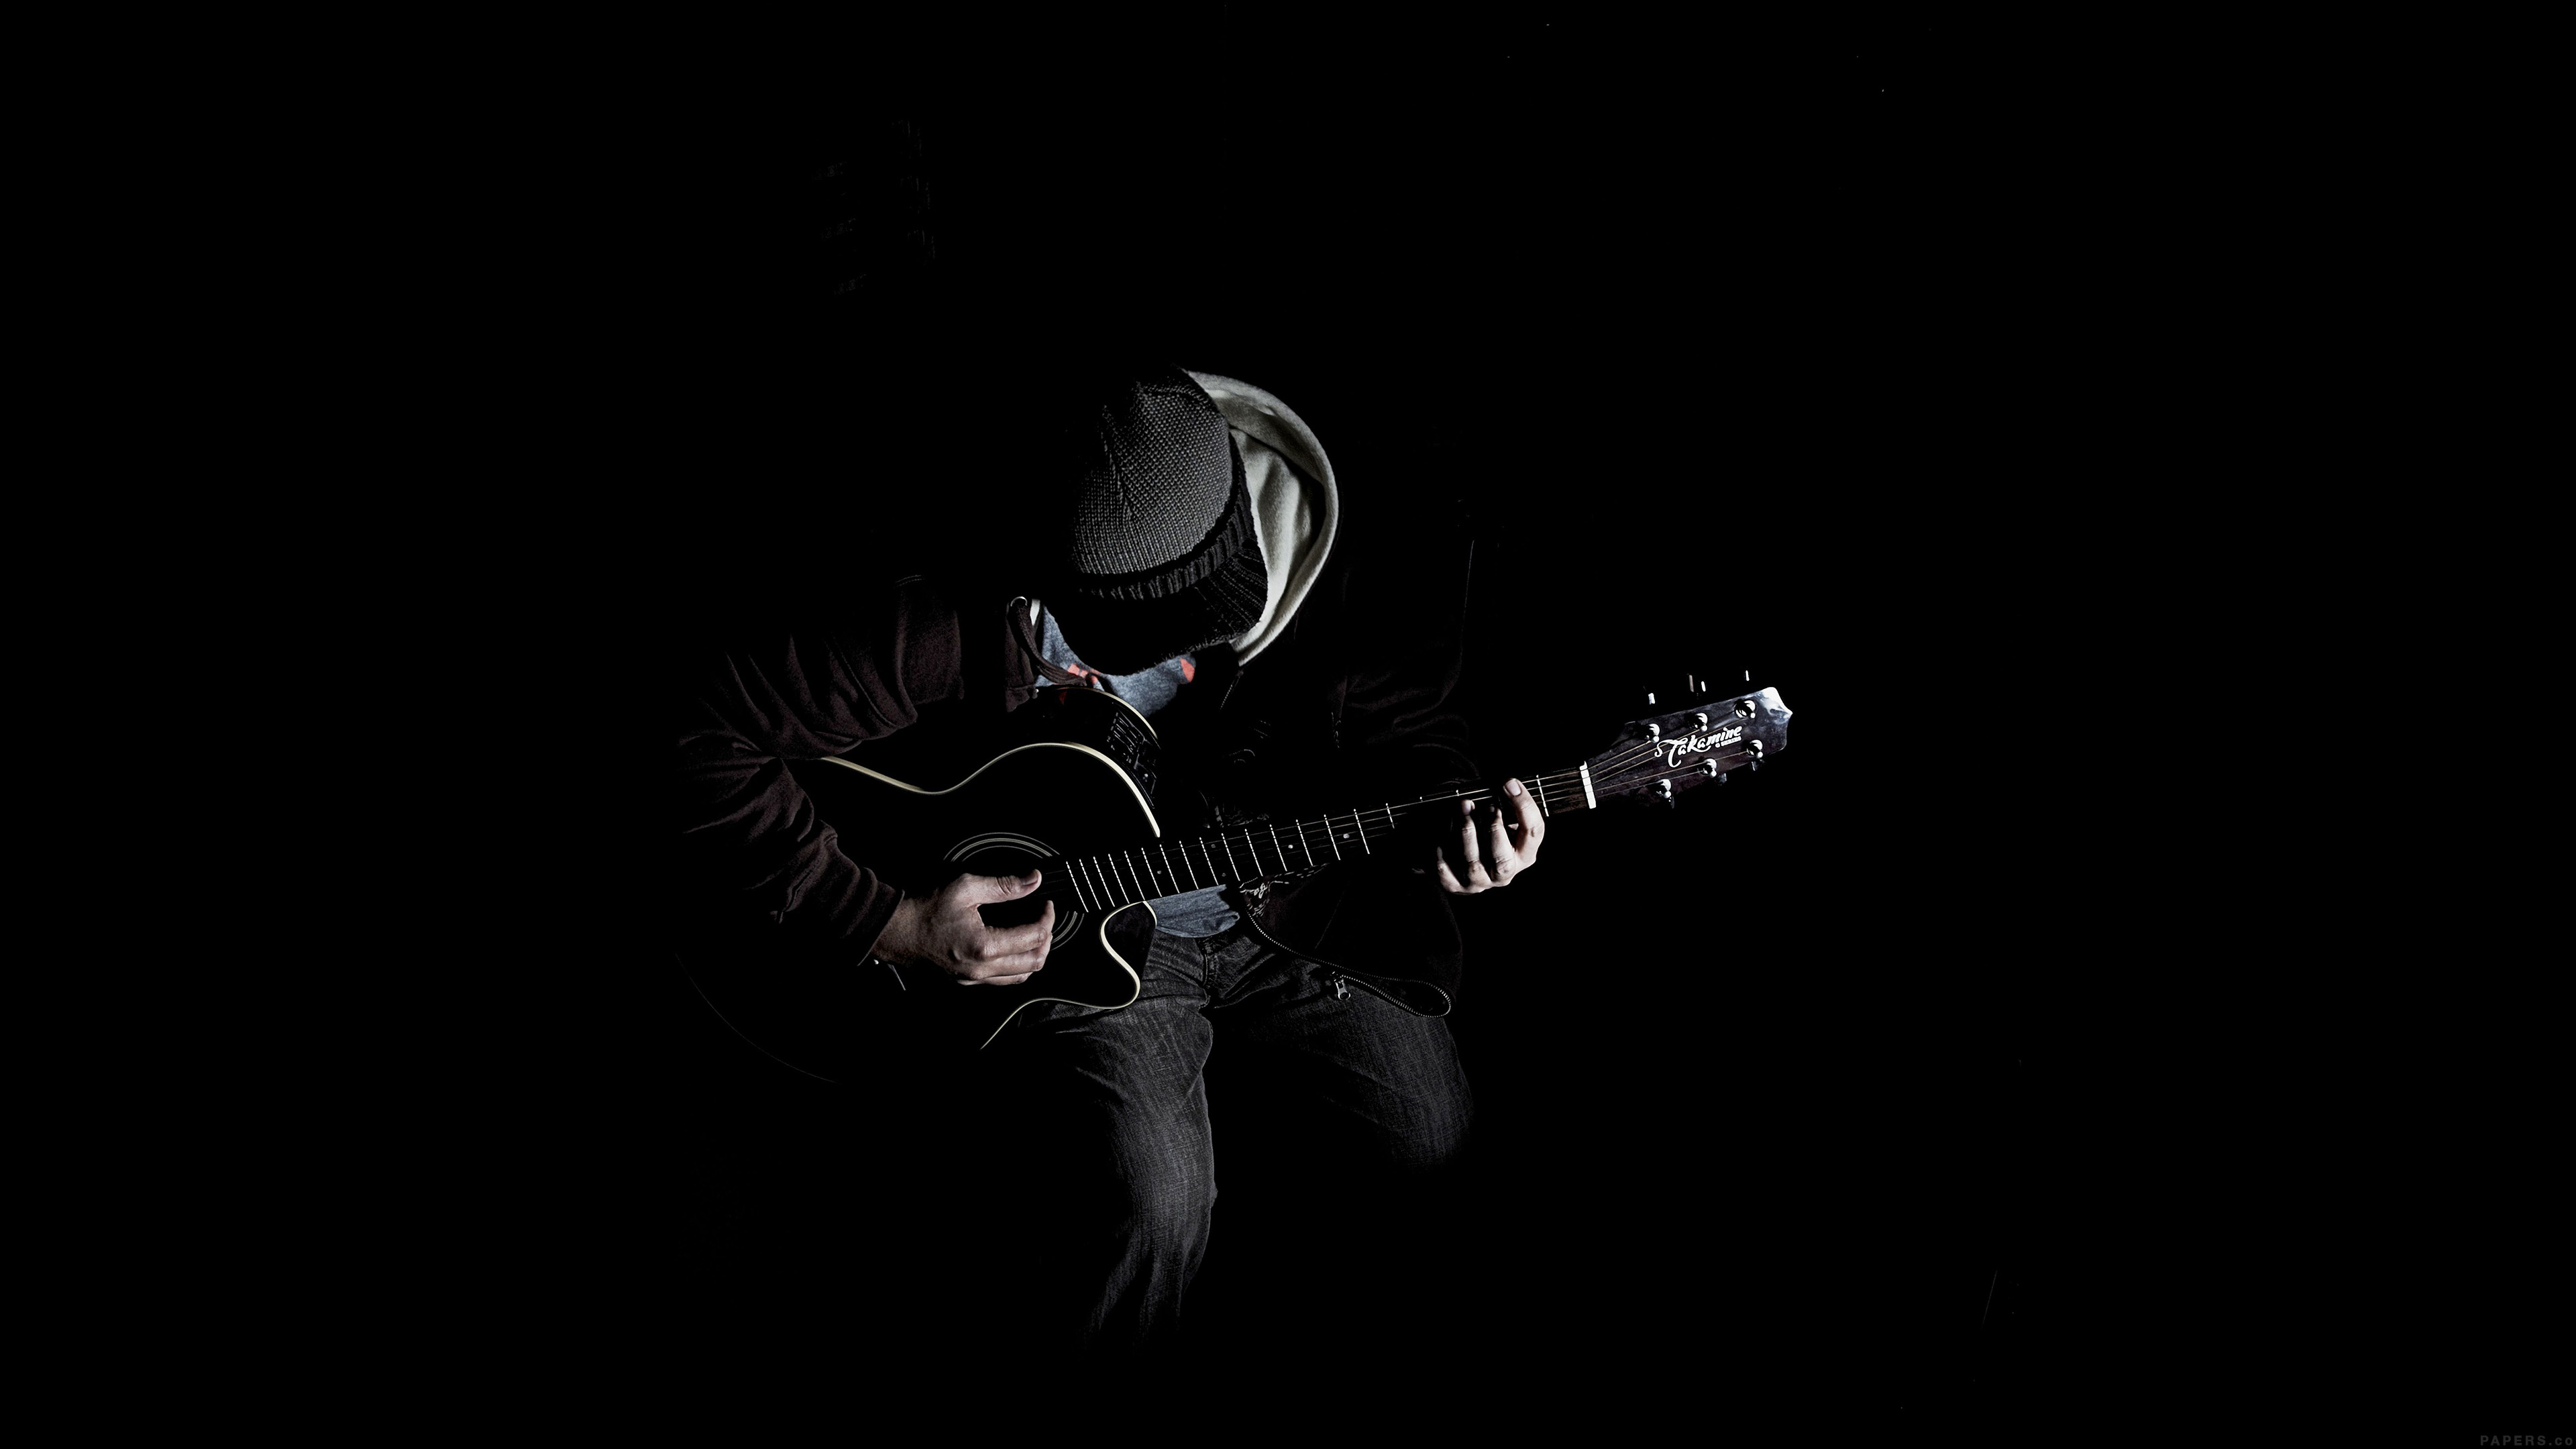 Al10-out-the-dark-guitar-player-music